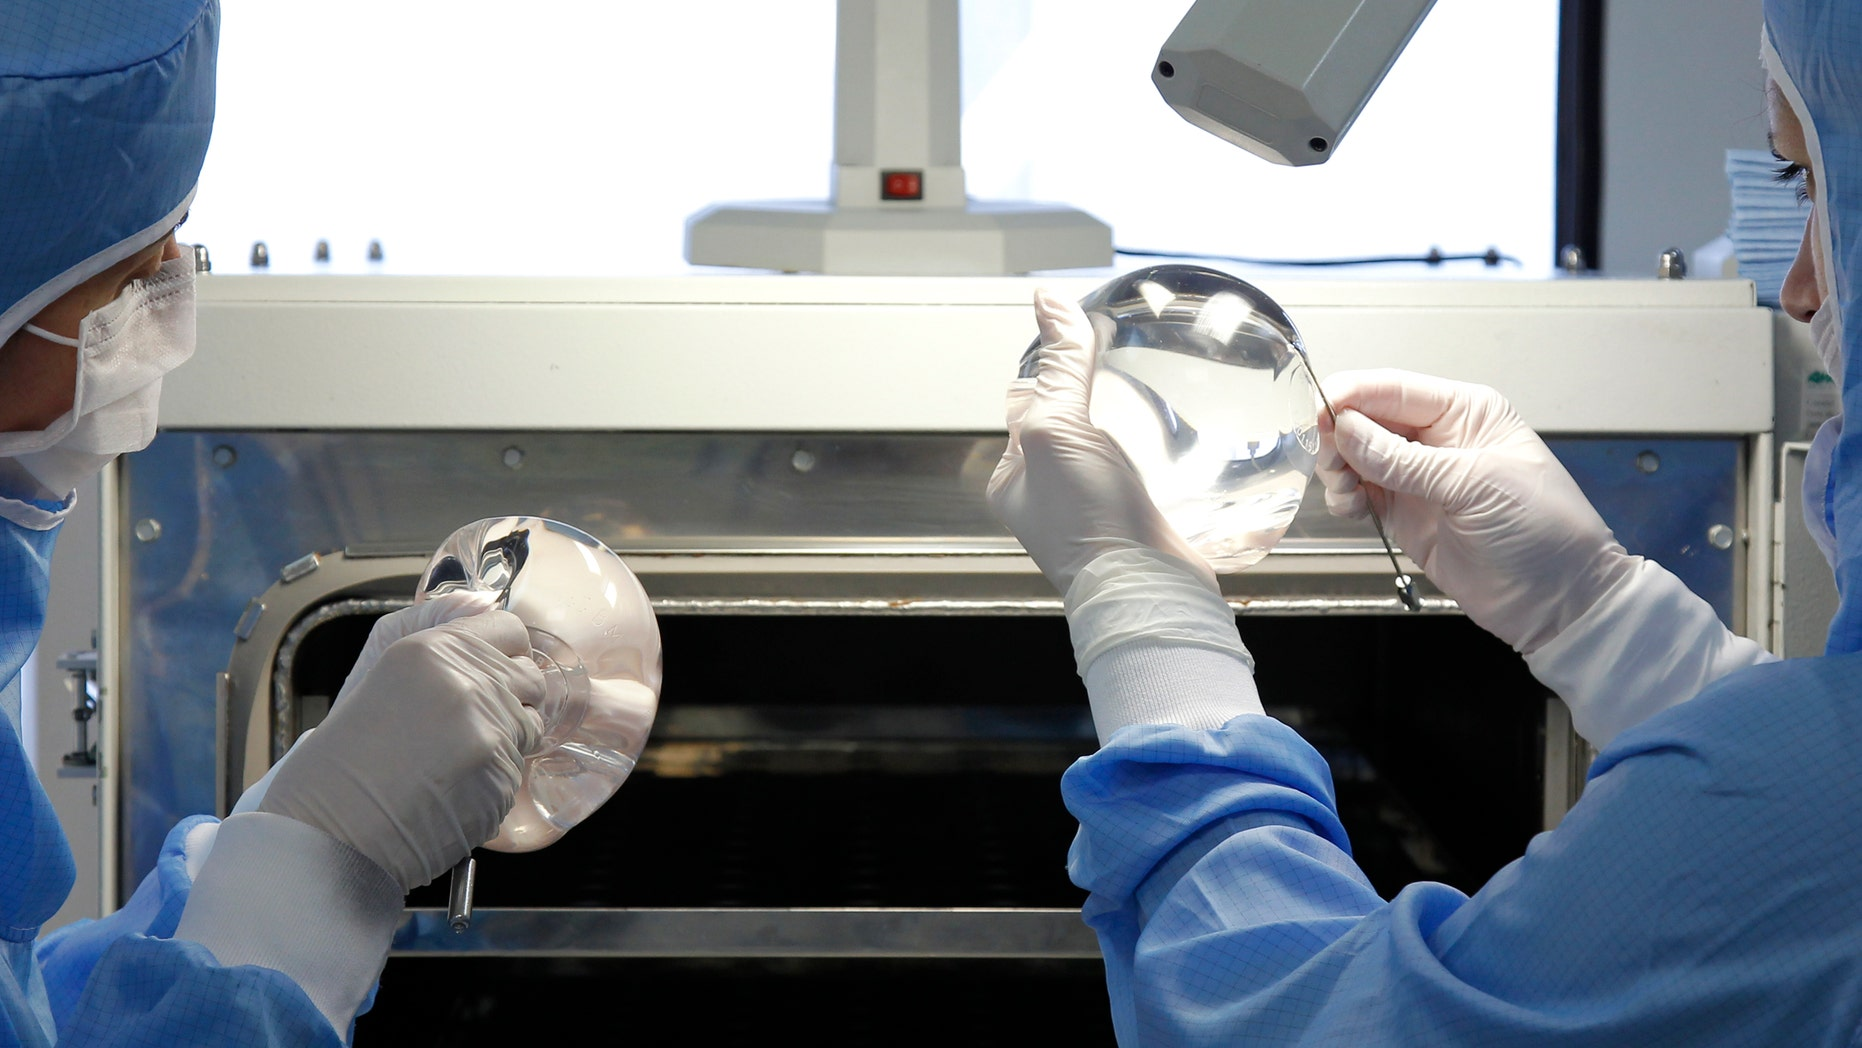 Technicians work in the processing of silicone gel breast implant manufactured by the French company Sebbin laboratories in Boissy-l'Aillerie, northern Paris January 12, 2012. REUTERS/Benoit Tessier